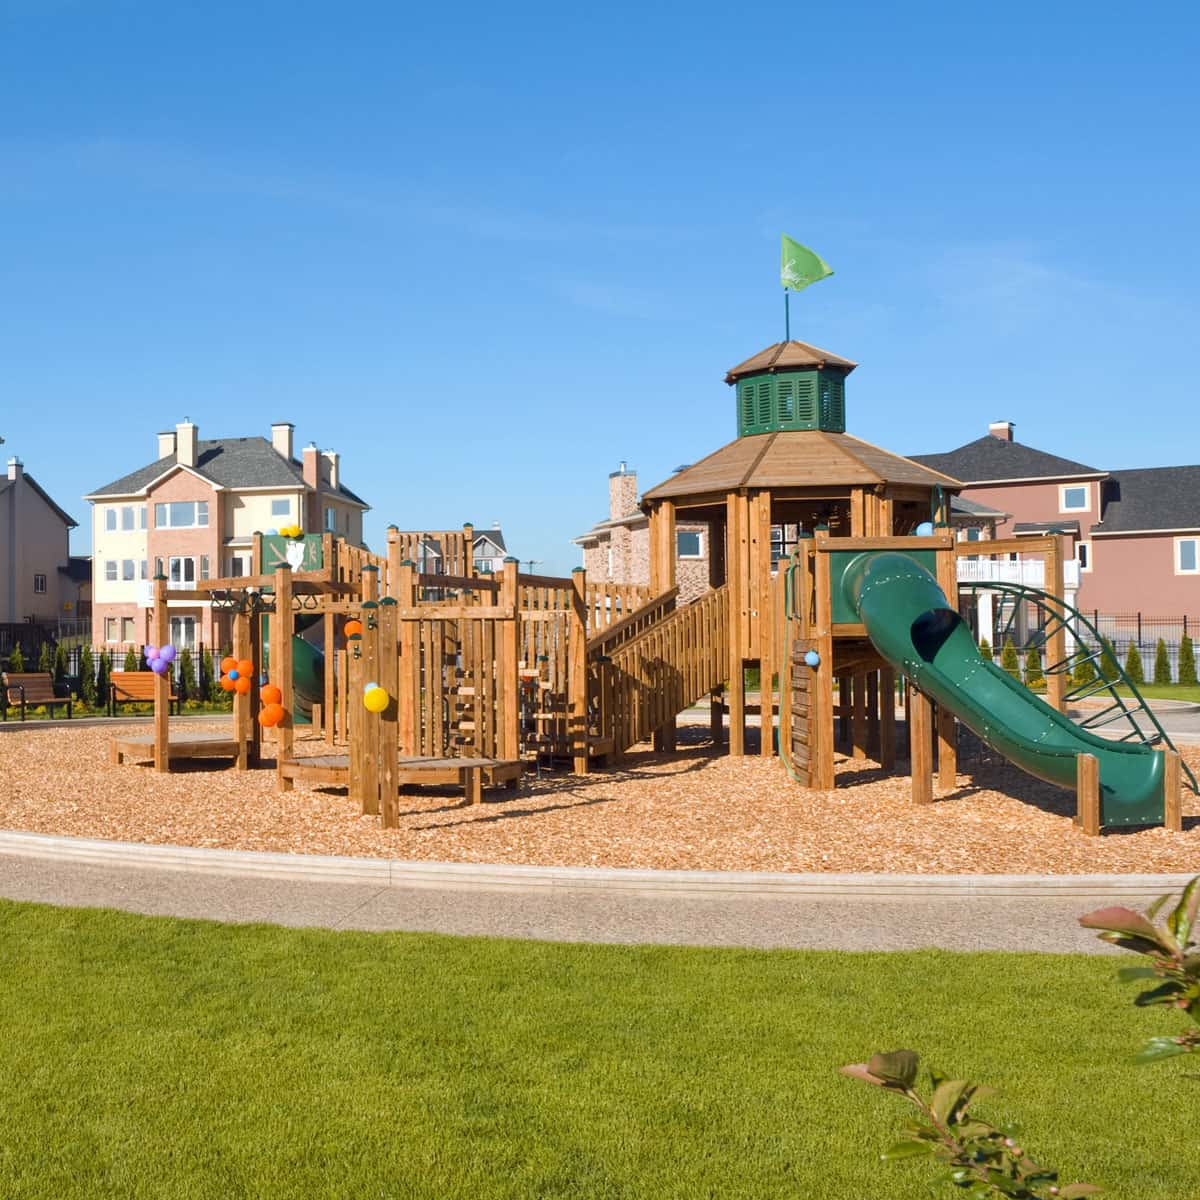 Playground in the neighborhood that could increase the value of your home